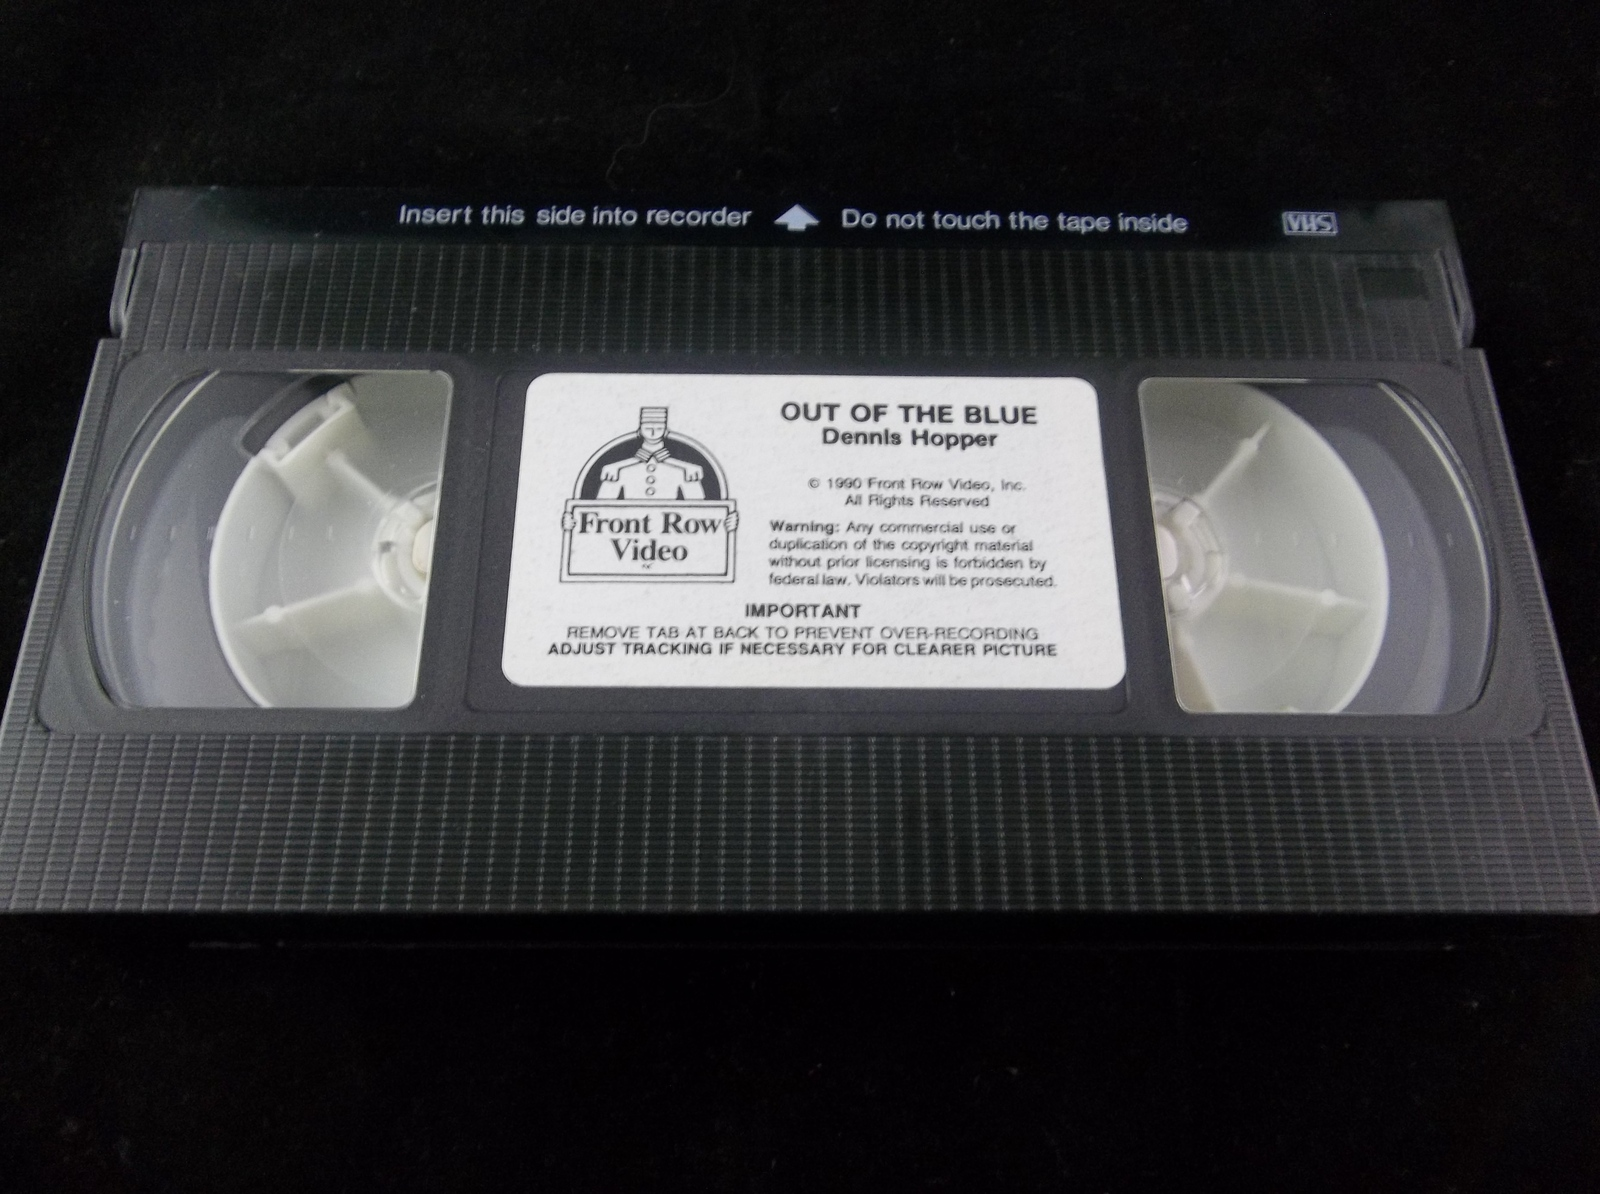 Out Of The Blue Dennis Hopper 1990 VHS